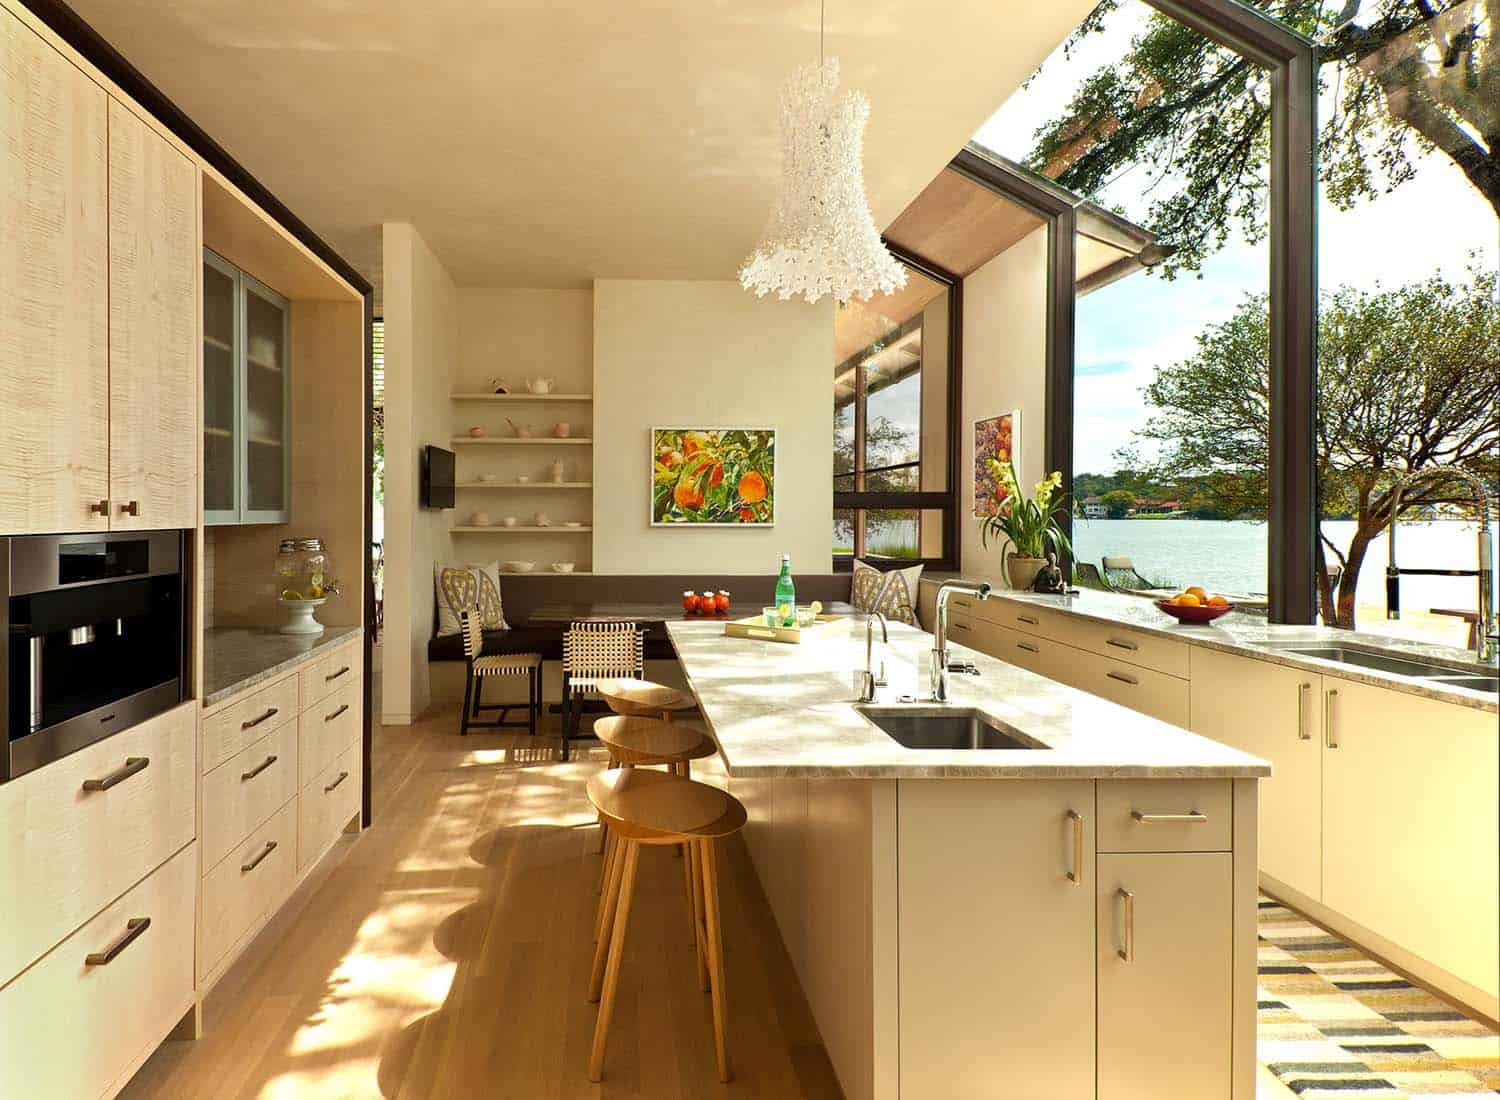 Contemporary Lake House Renovation-Furman Keil Architects-04-1 Kindesign